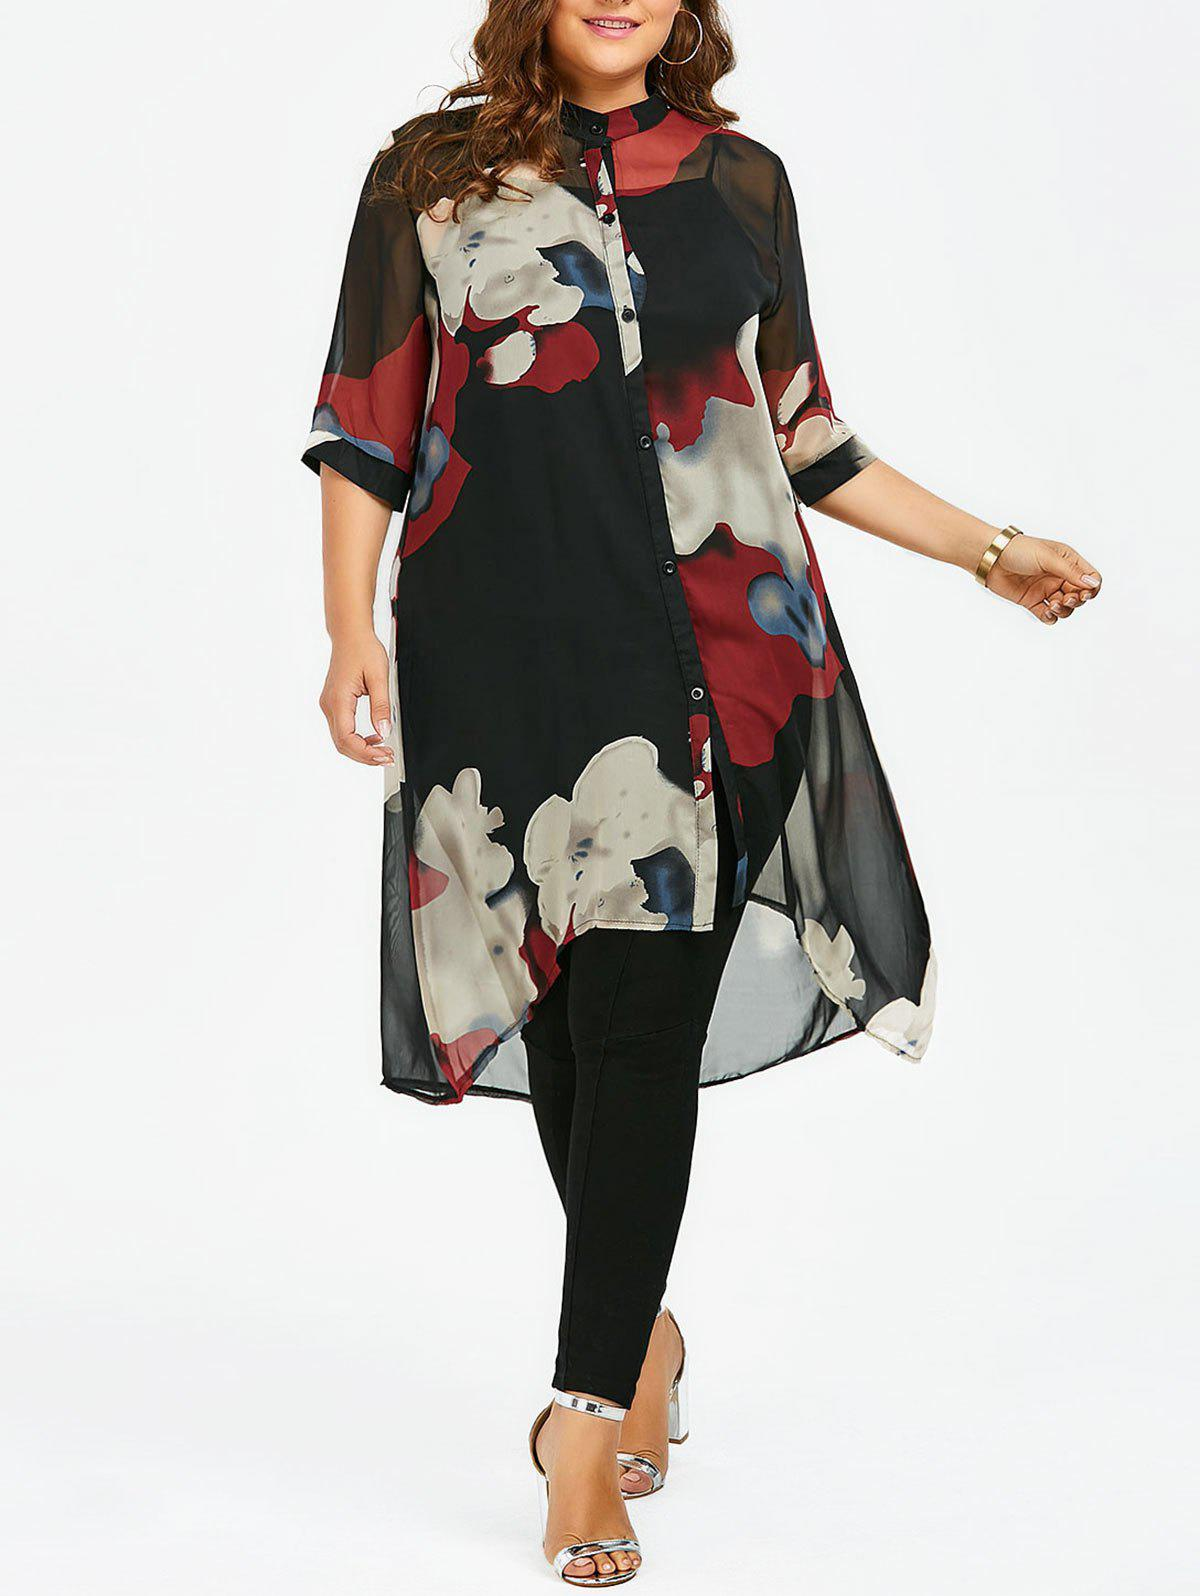 Plus Size Button Up Printed Chiffon Flowy Tunic TopWOMEN<br><br>Size: 4XL; Color: RED; Material: Polyester; Fabric Type: Chiffon; Shirt Length: Long; Sleeve Length: Three Quarter; Collar: Mandarin Collar; Style: Fashion; Season: Spring,Summer; Embellishment: Button; Pattern Type: Print; Weight: 0.1800kg; Package Contents: 1 x Top;